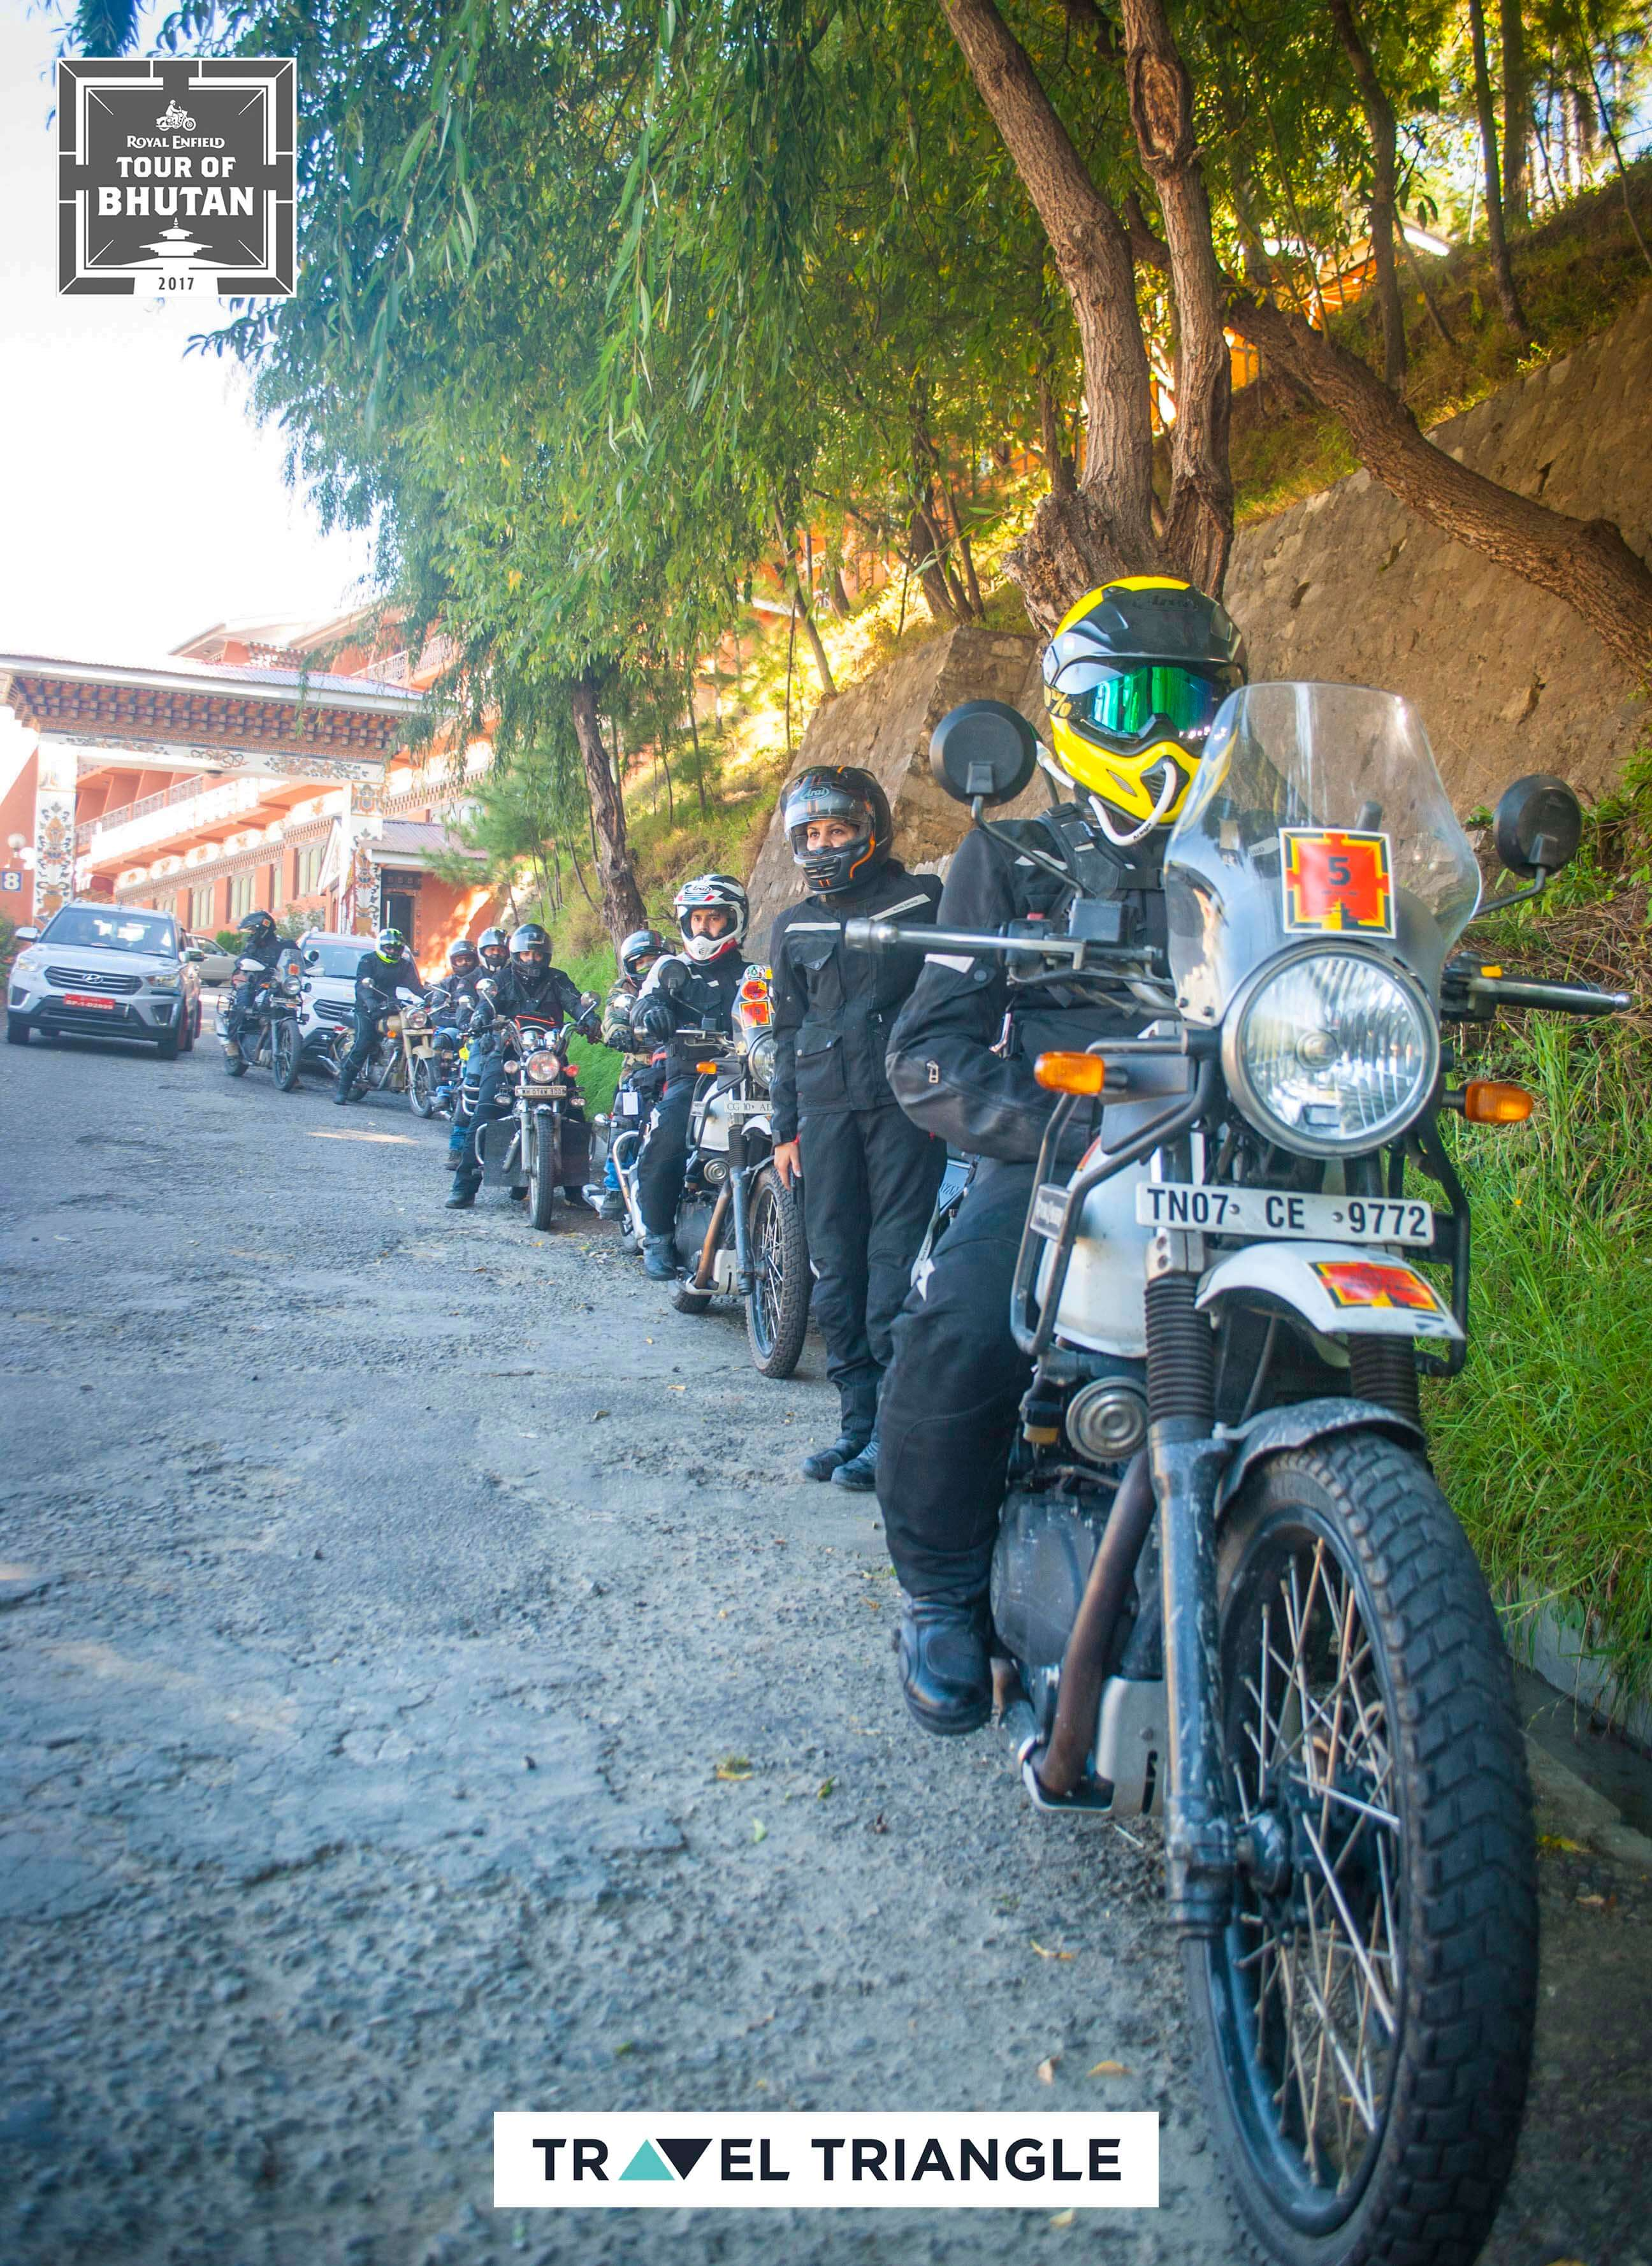 royal enfield india bhutan road trip: the entire group in formation